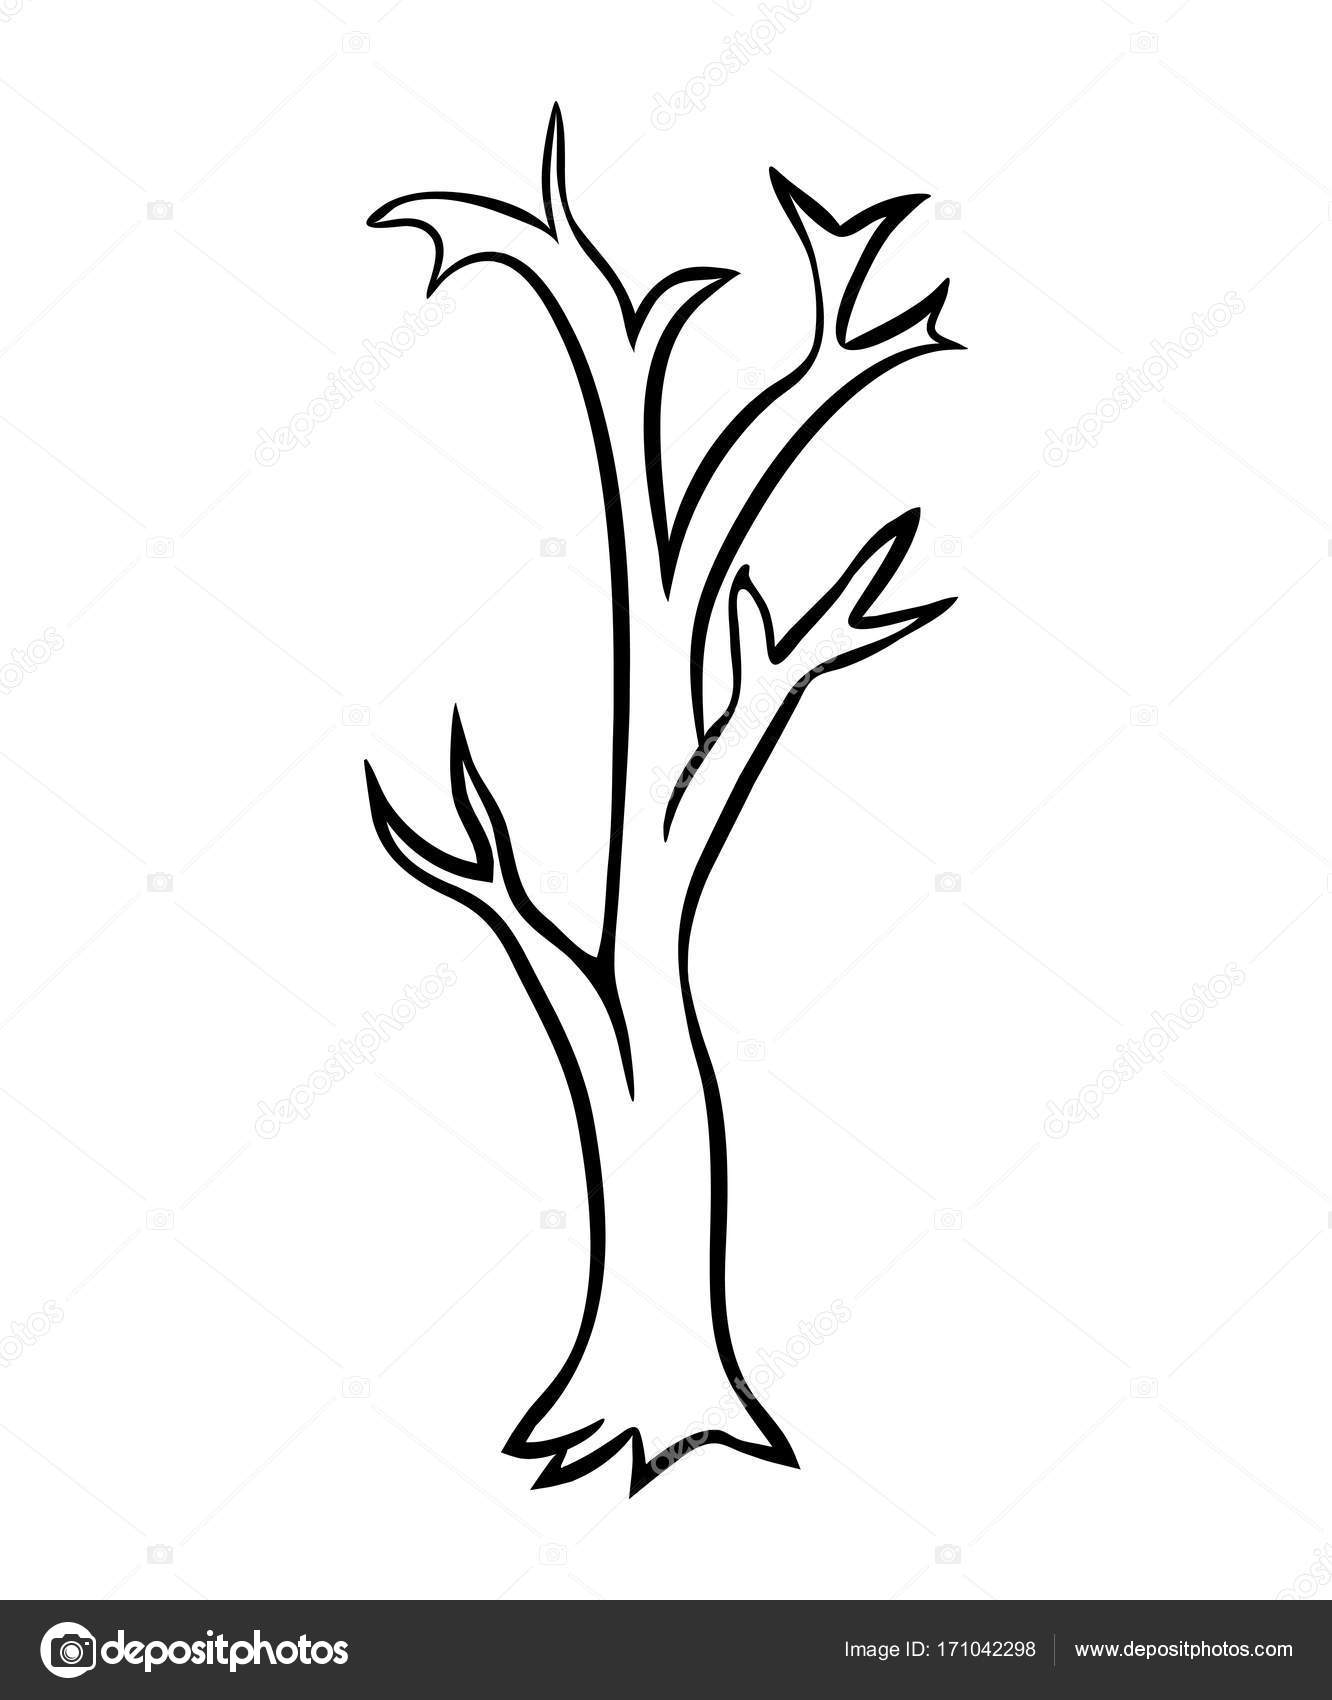 Bare Tree Outline Bare Tree Cartoon Outline Vector Design Isolated On White Backgr Stock Vector C Newelle 171042298 Large png 2400px small png 300px. https depositphotos com 171042298 stock illustration bare tree cartoon outline vector html